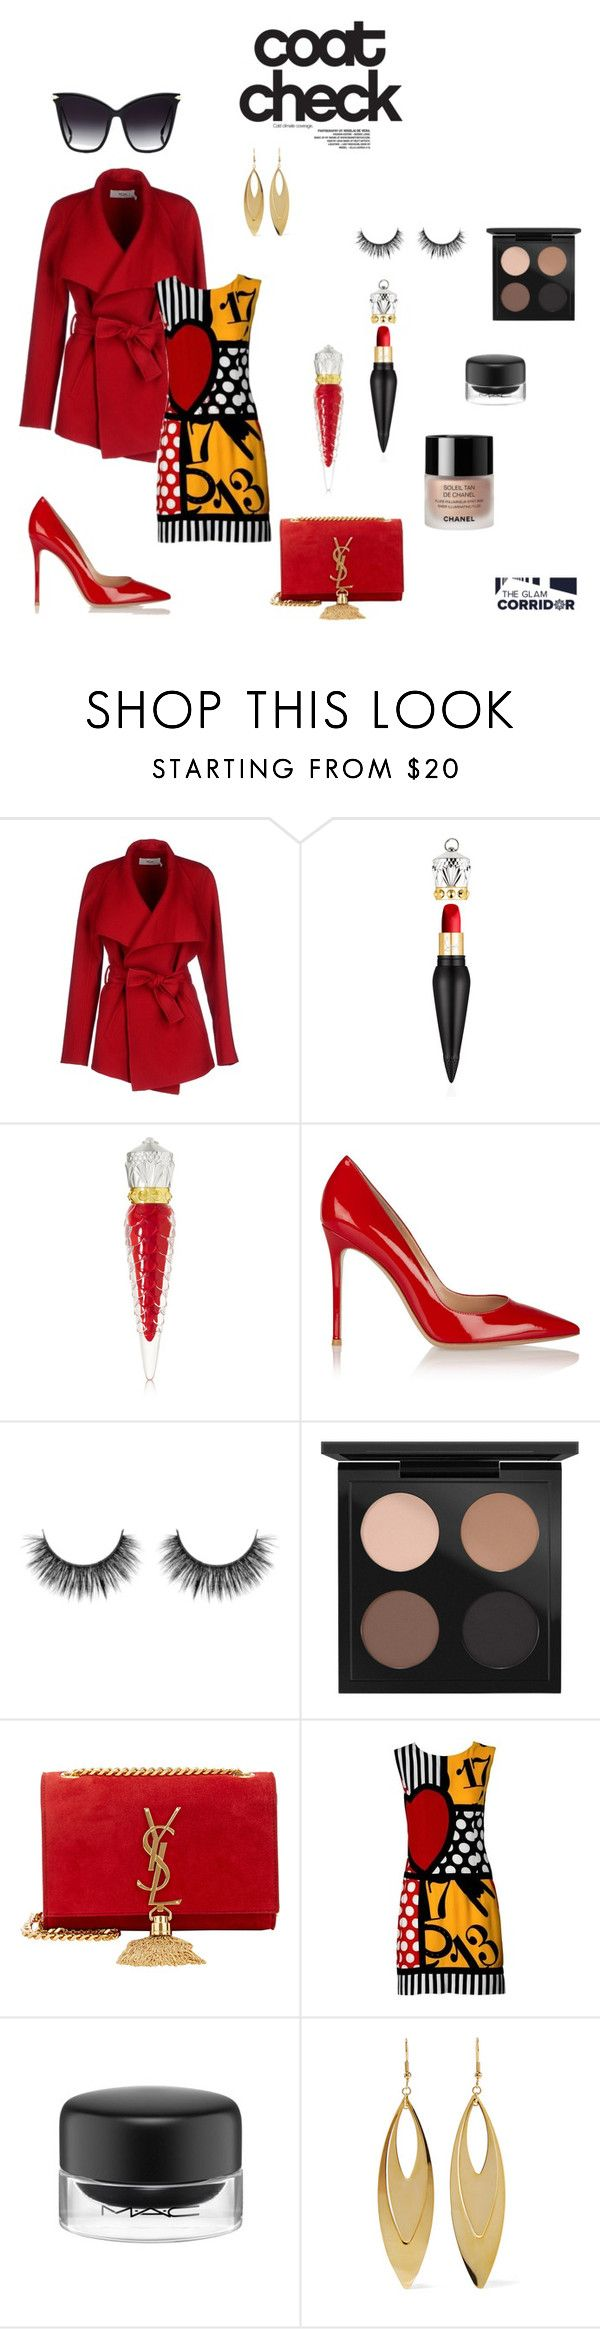 """""""Painting the town red"""" by theglamcorridor ❤ liked on Polyvore featuring BGN, Christian Louboutin, Gianvito Rossi, MAC Cosmetics, Yves Saint Laurent, Moschino, Chanel, Kenneth Jay Lane and Dita"""